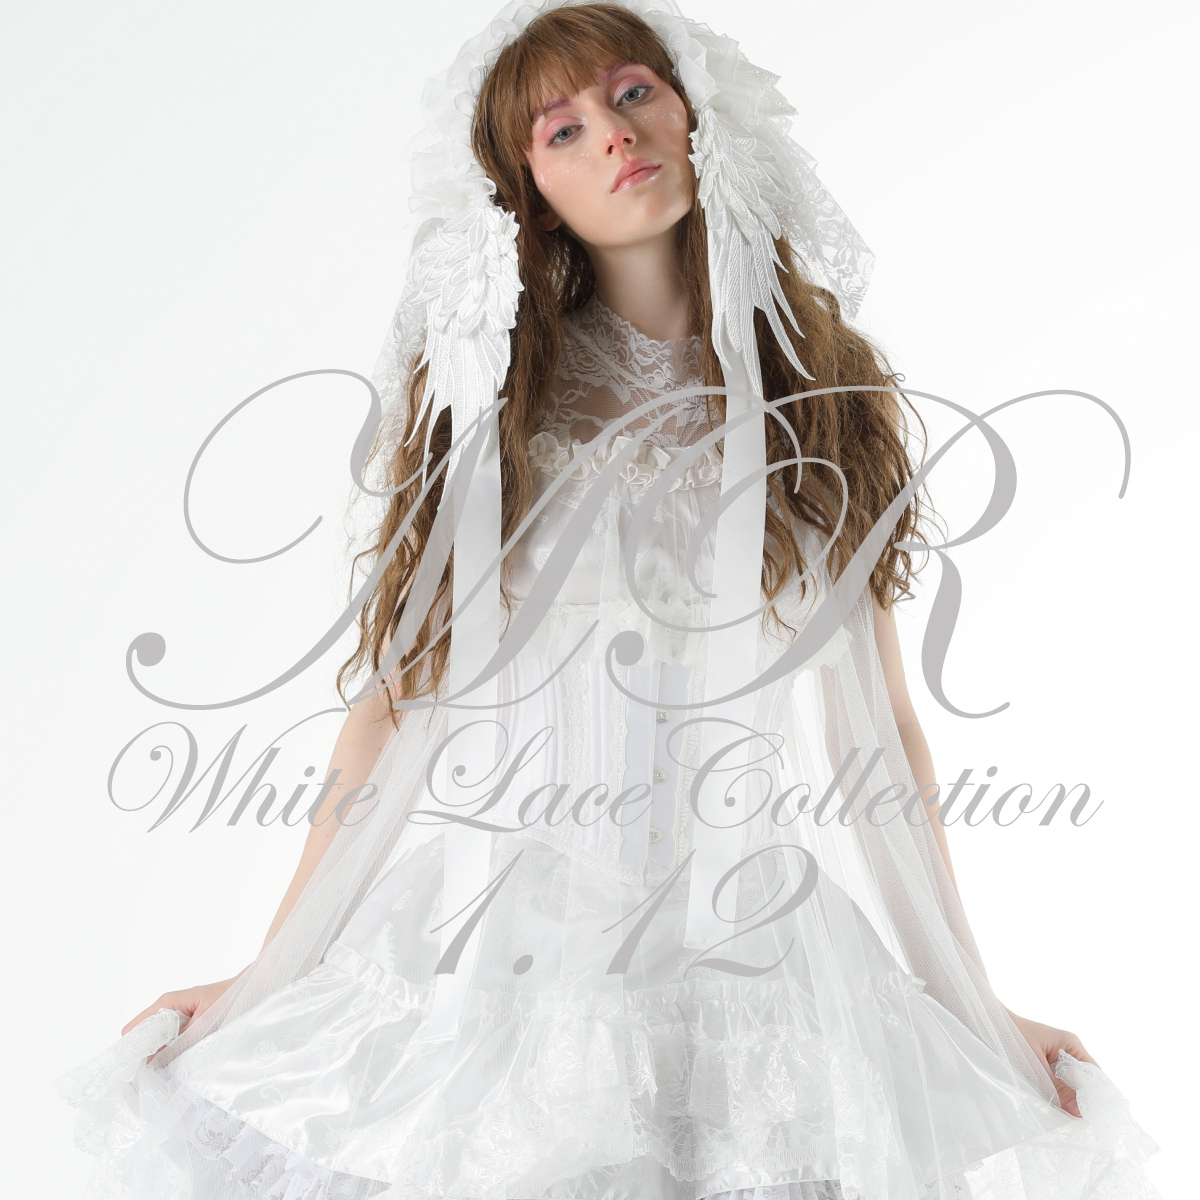 0112 White Lace Collection